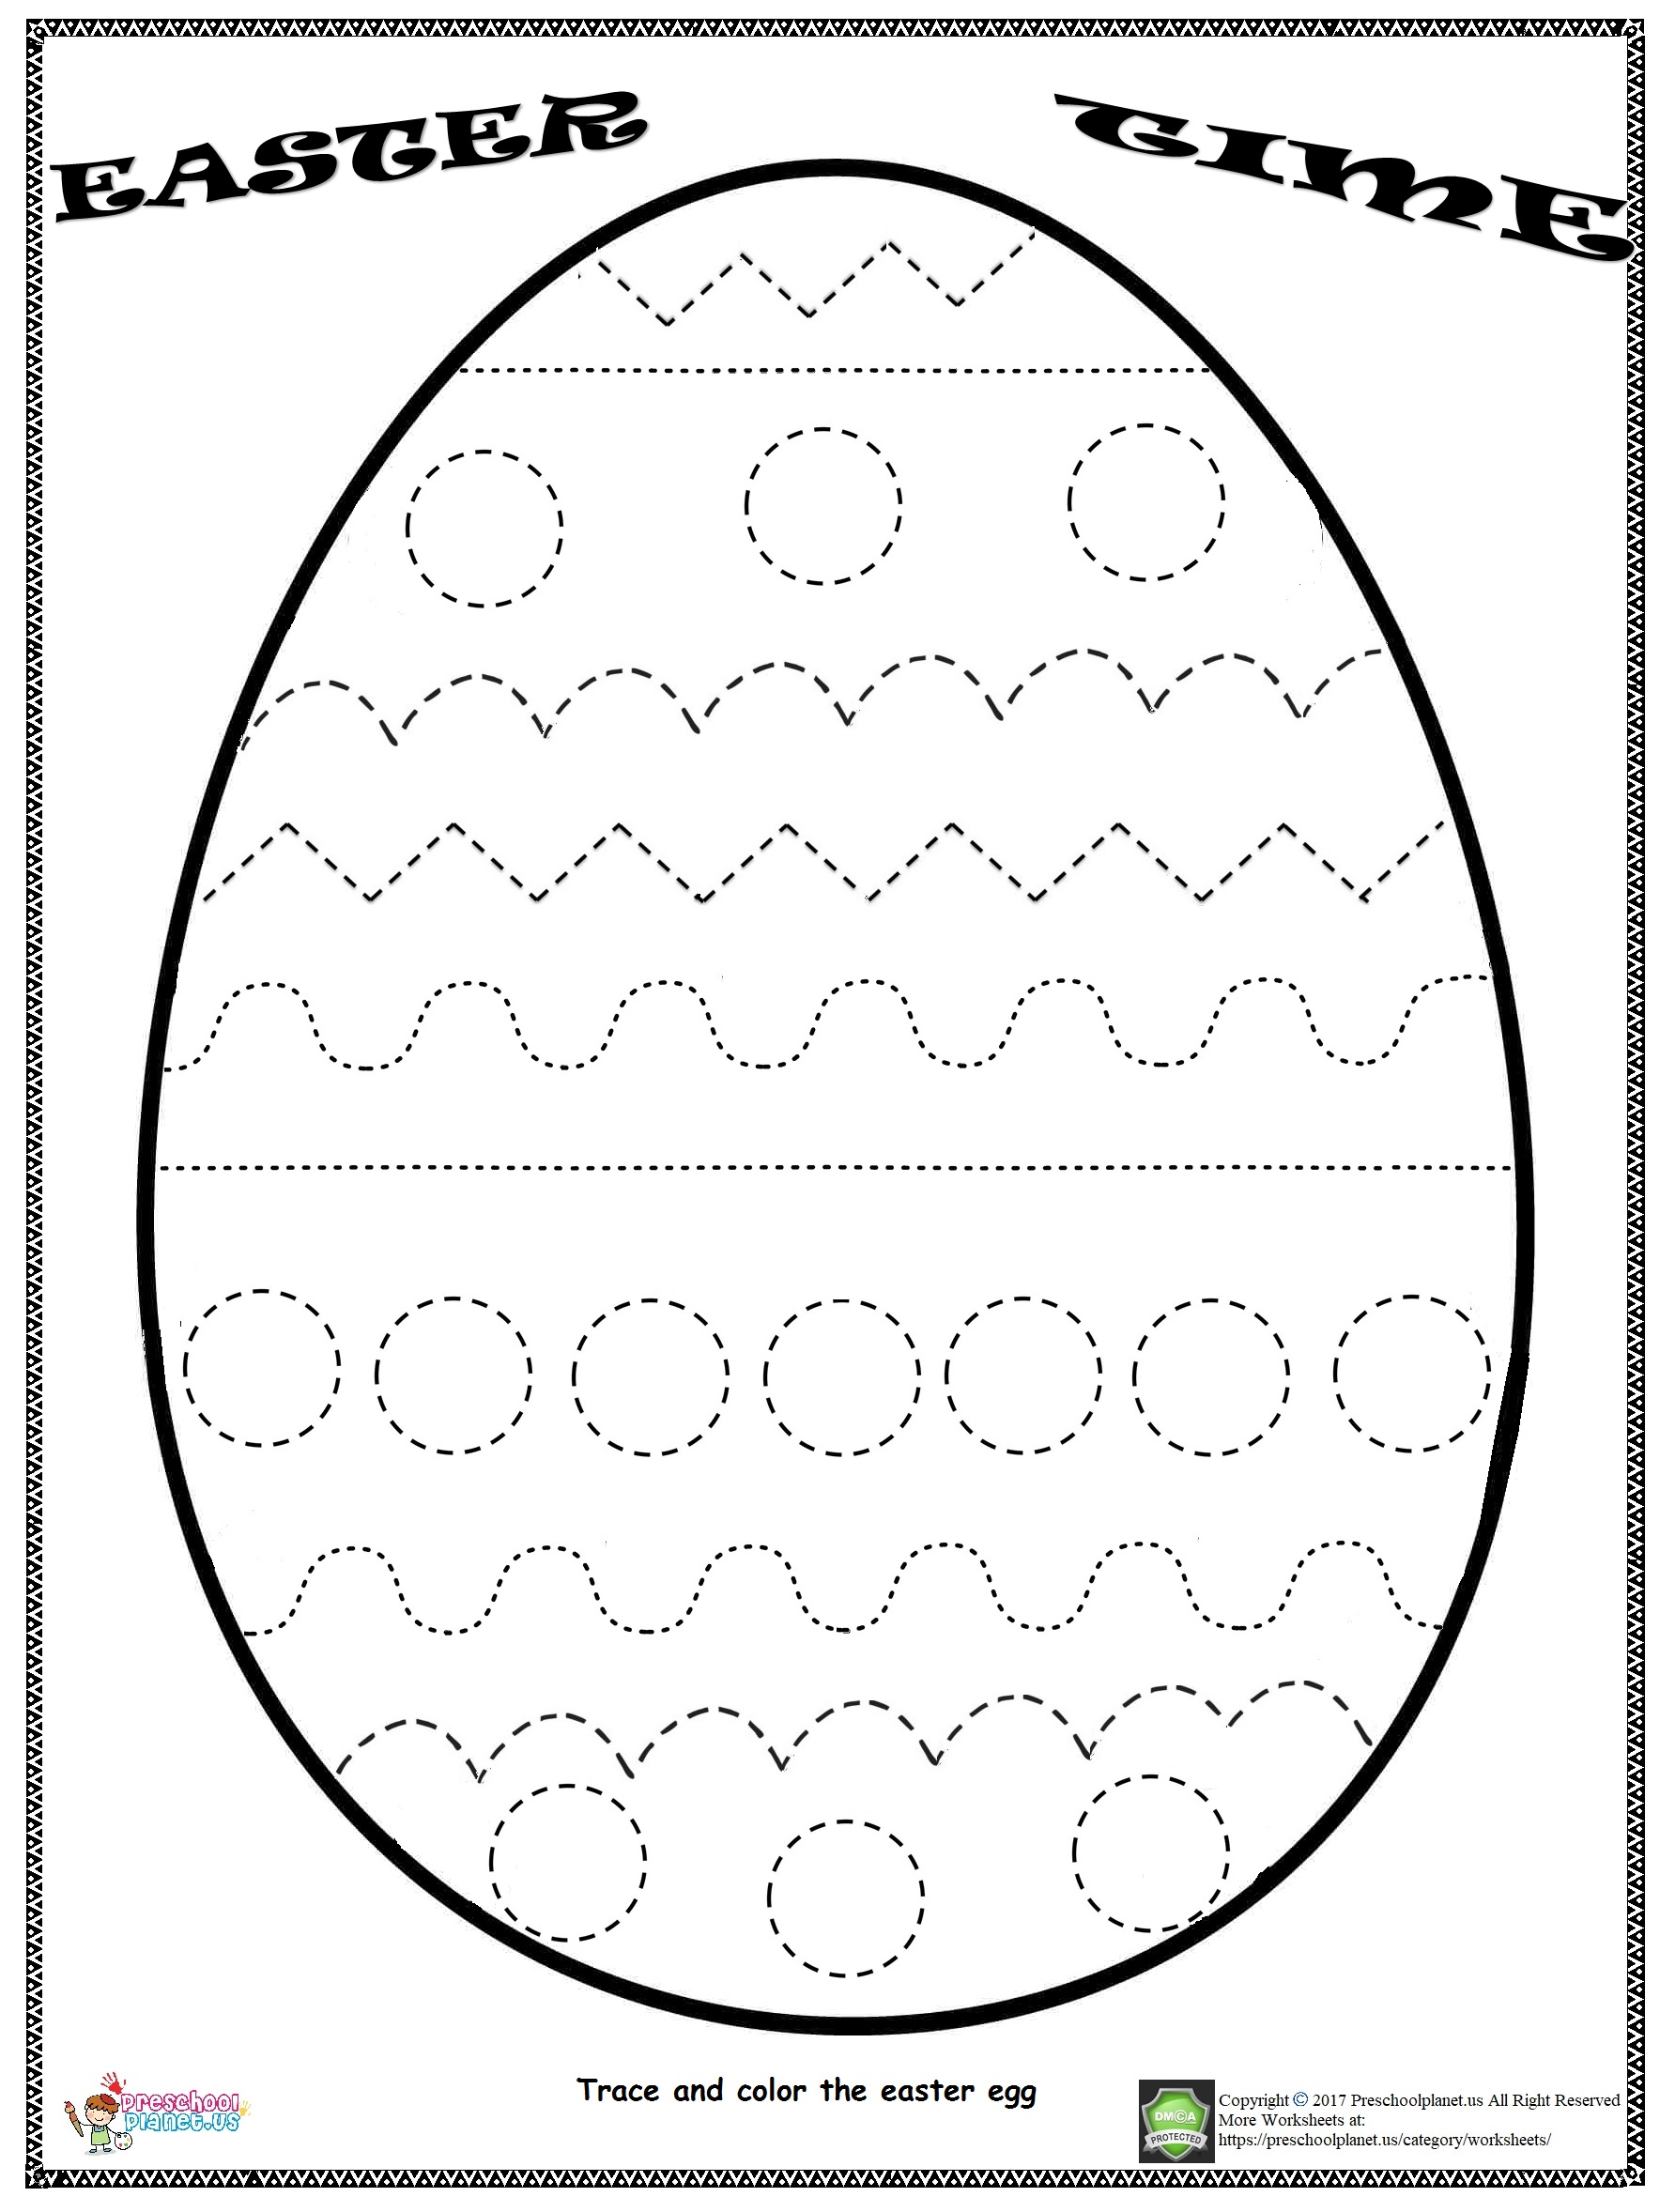 Preschool Pattern Worksheet For Easter